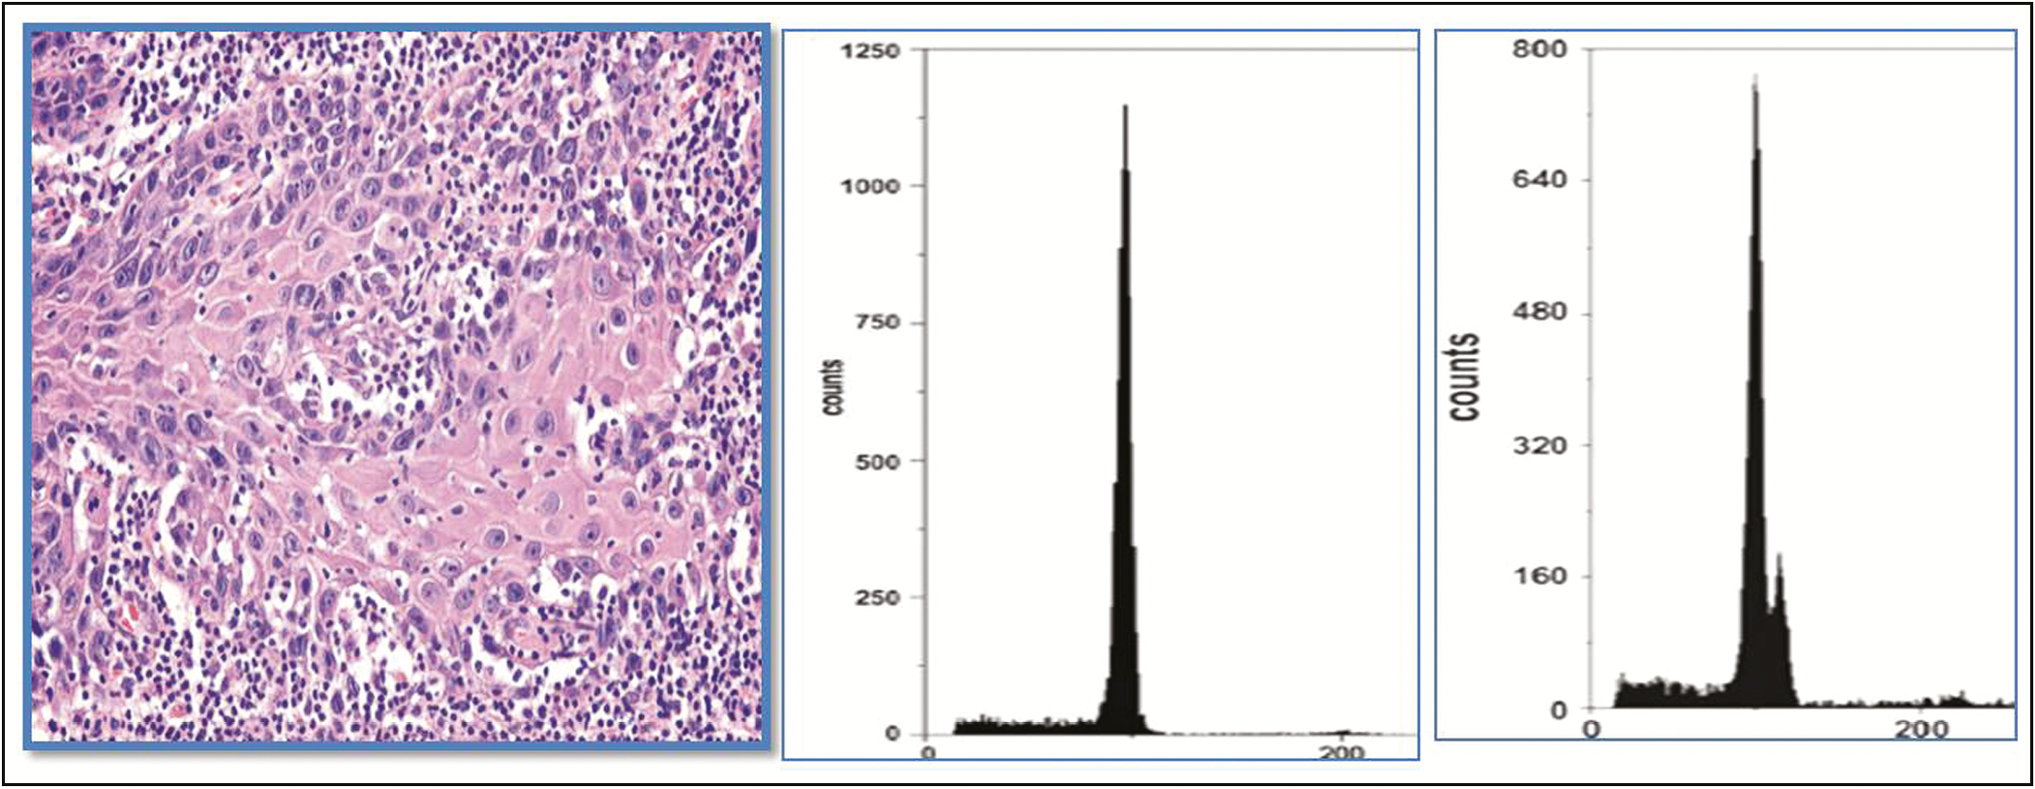 Figure 4: Moderately differentiated epithelium of oral squamous cell carcinoma and diploidy and aneuploidy demonstrated by peaks